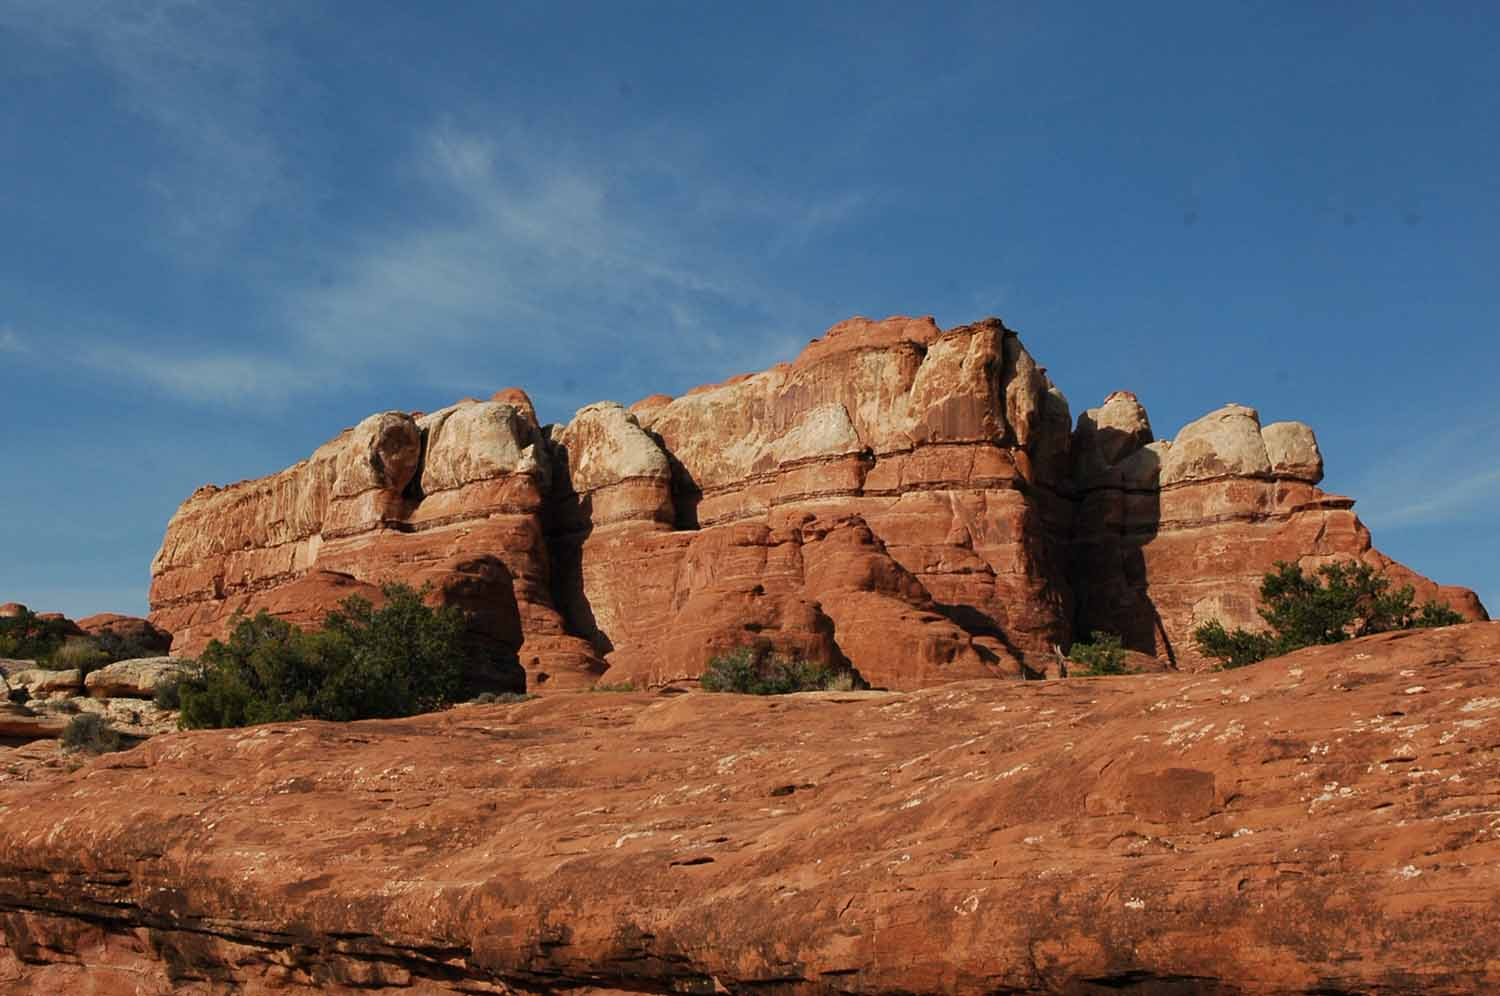 Chesler Park - More red rock